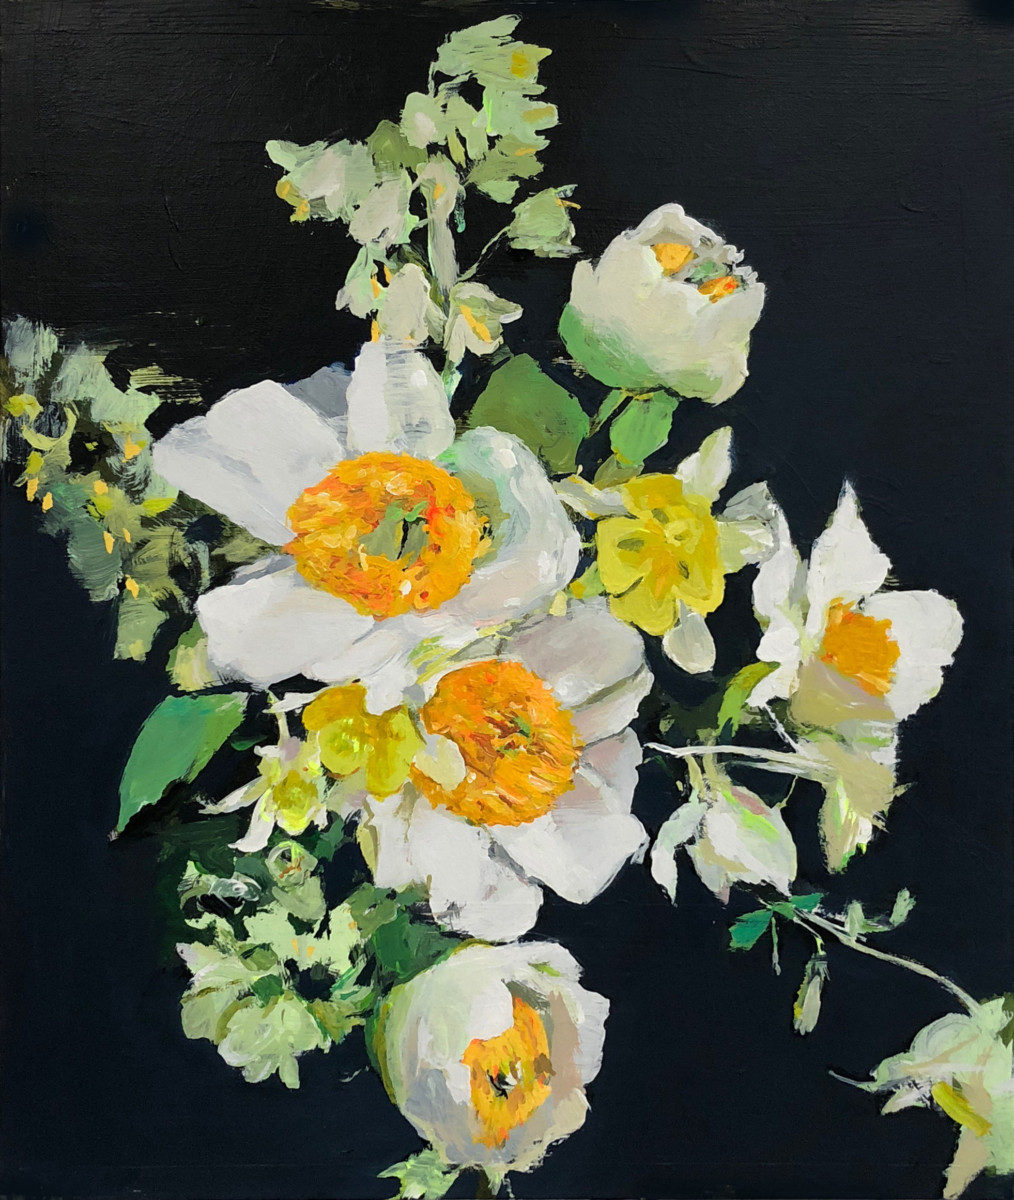 Michael Harnish_BOUQUET_24 x 20 inches_acrylic